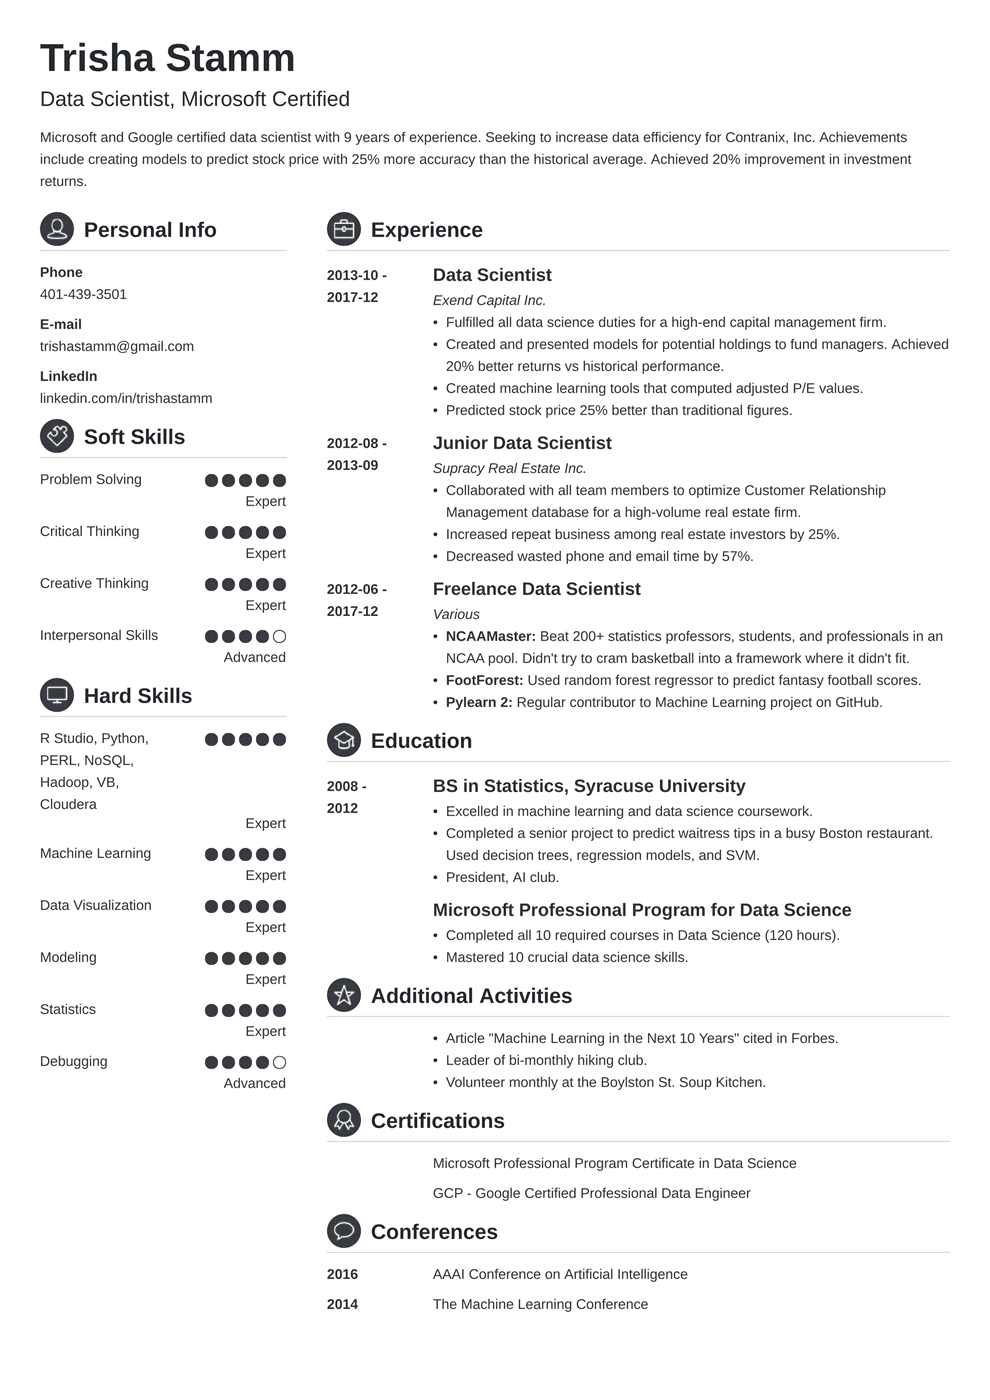 Data Scientist Resume: Sample and Complete Guide [20+ Examples]